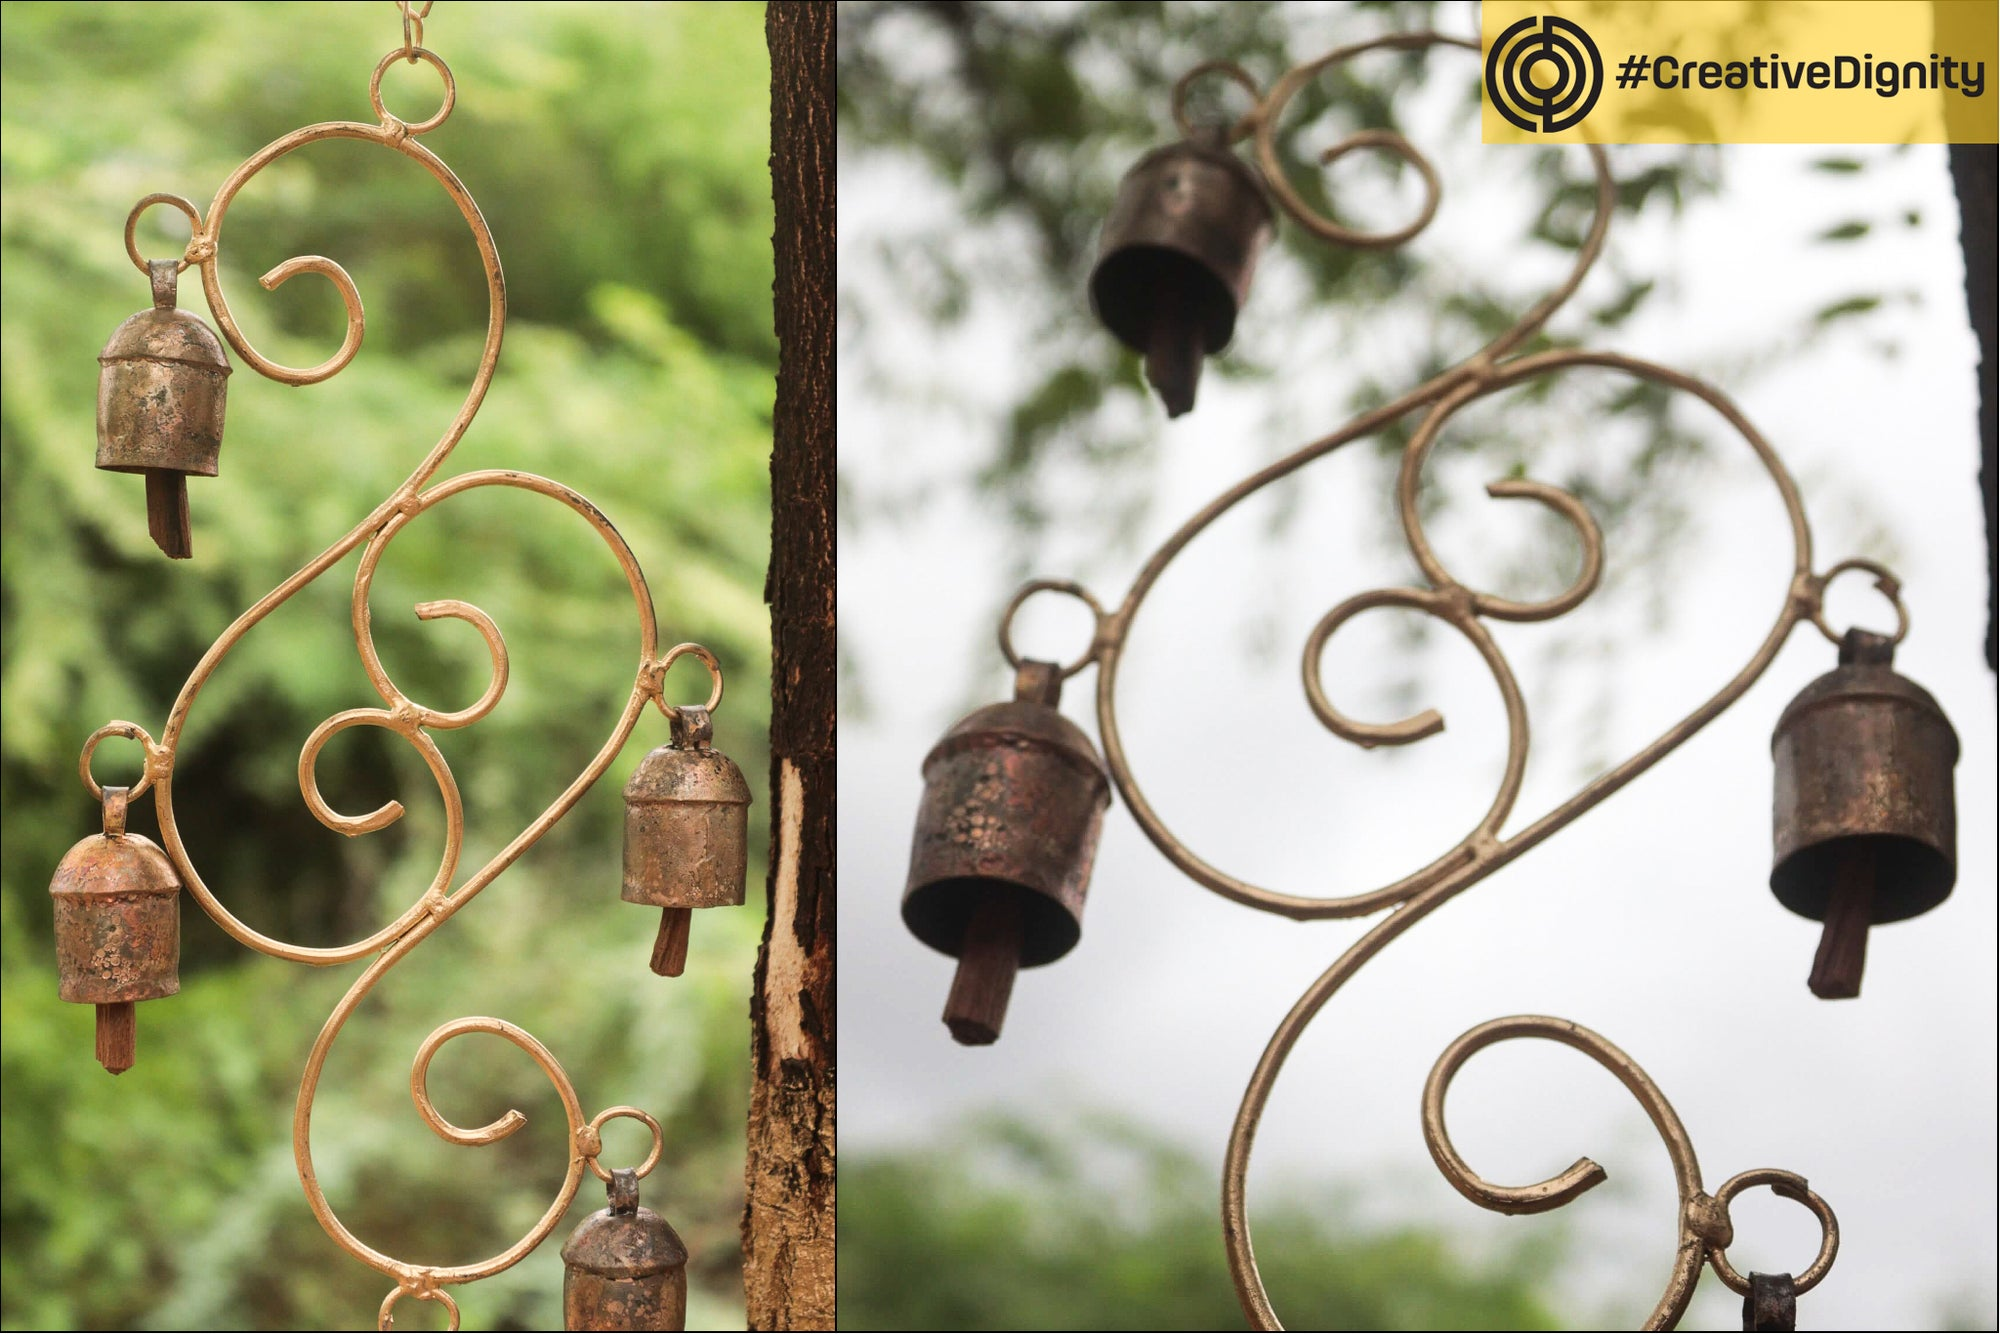 Kutch Copper Coated Bell Hanging by Janmamad Luhar